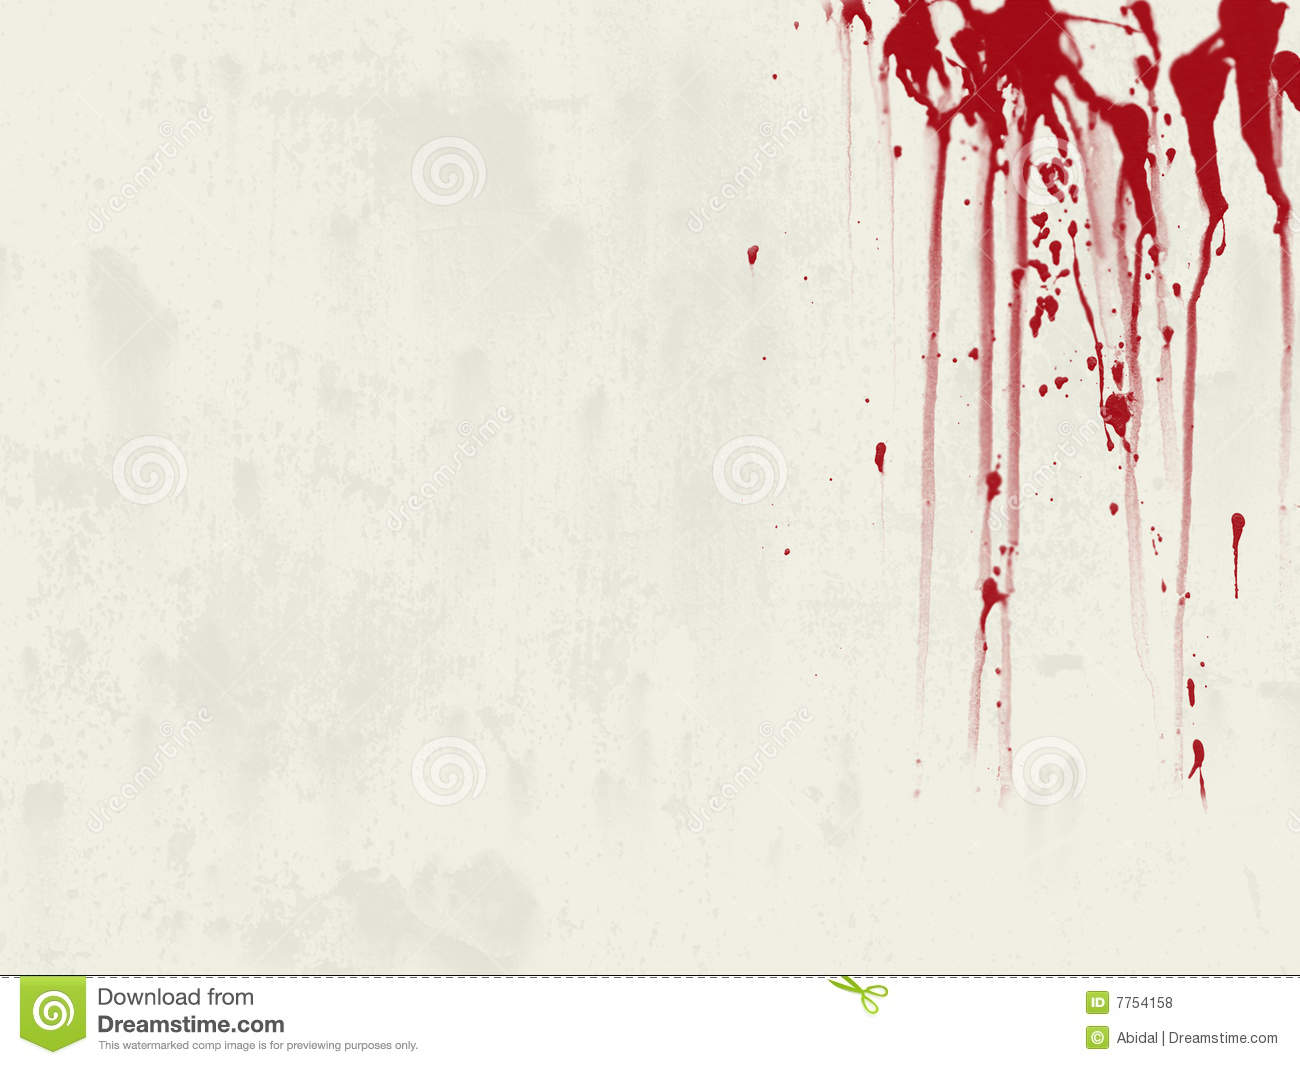 Blood Background Stock Vector Illustration Of Blood 7754158